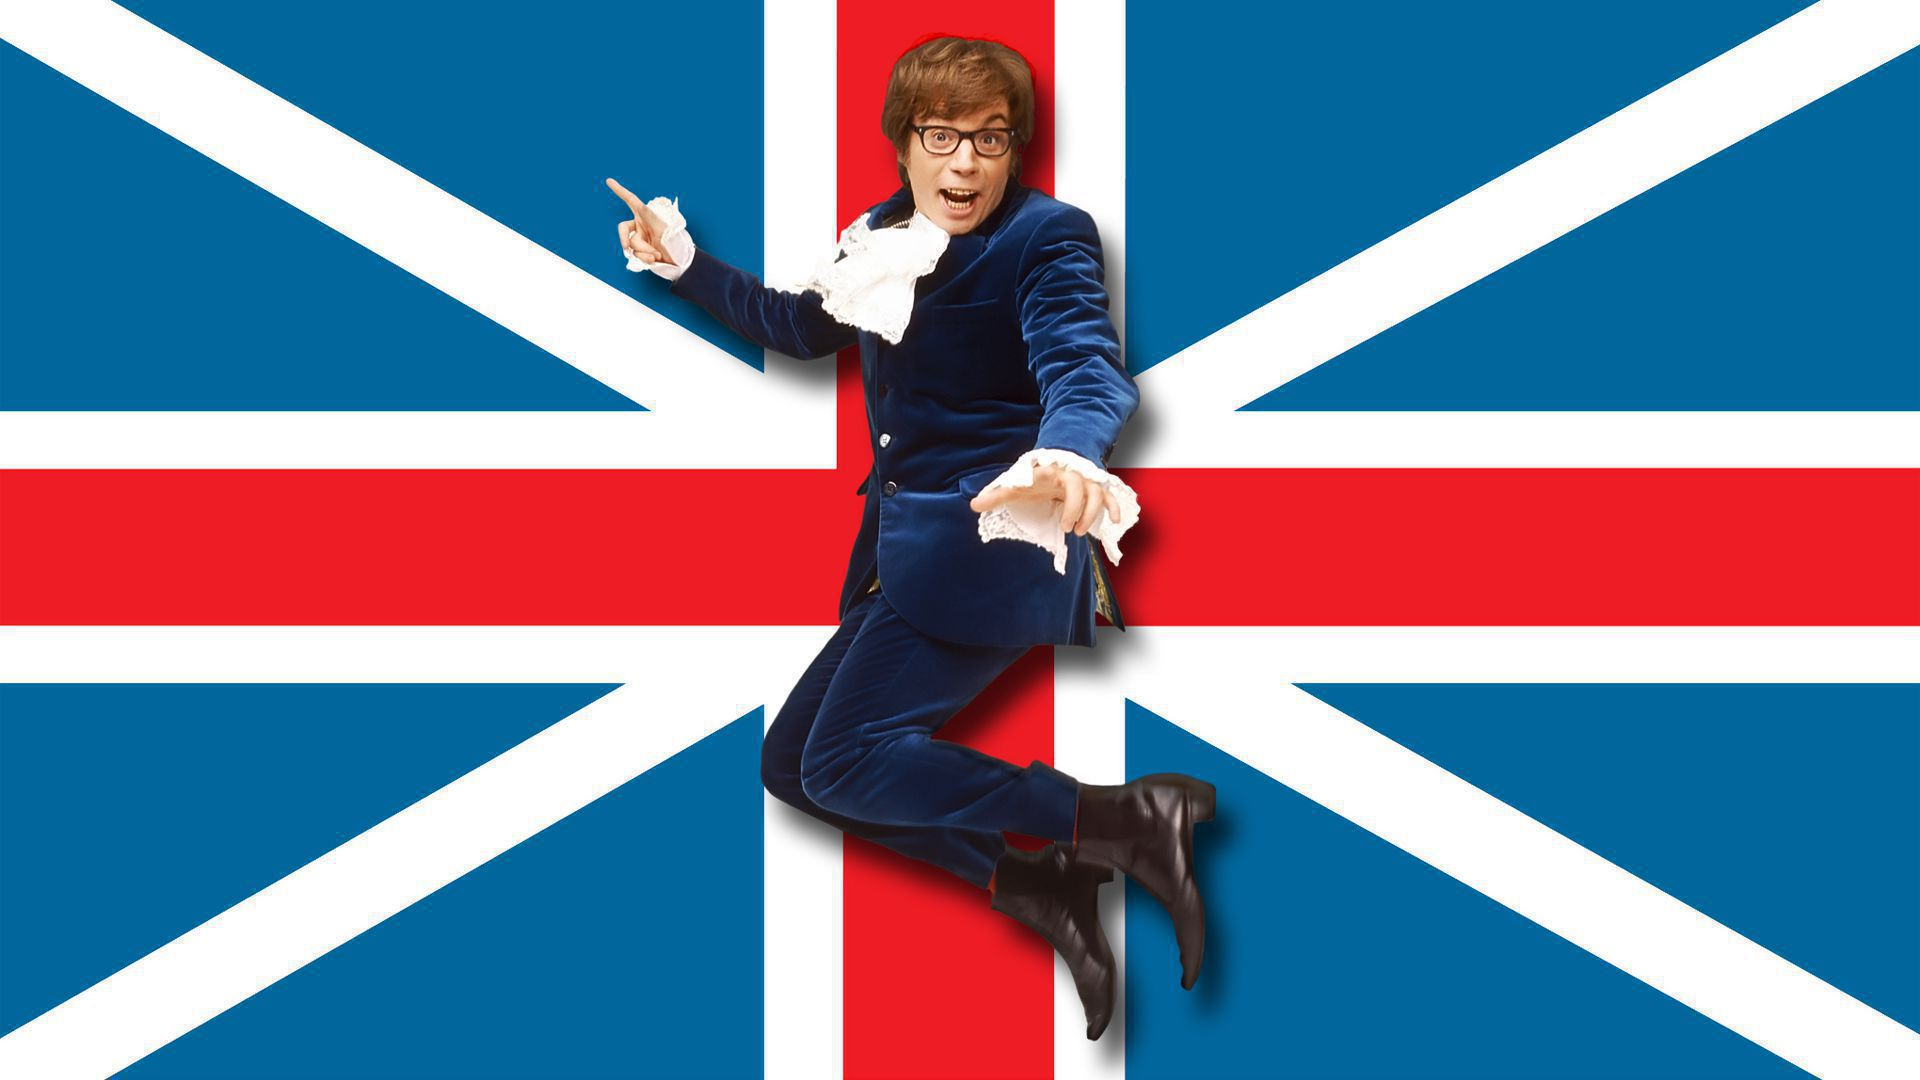 Picture Austin Powers